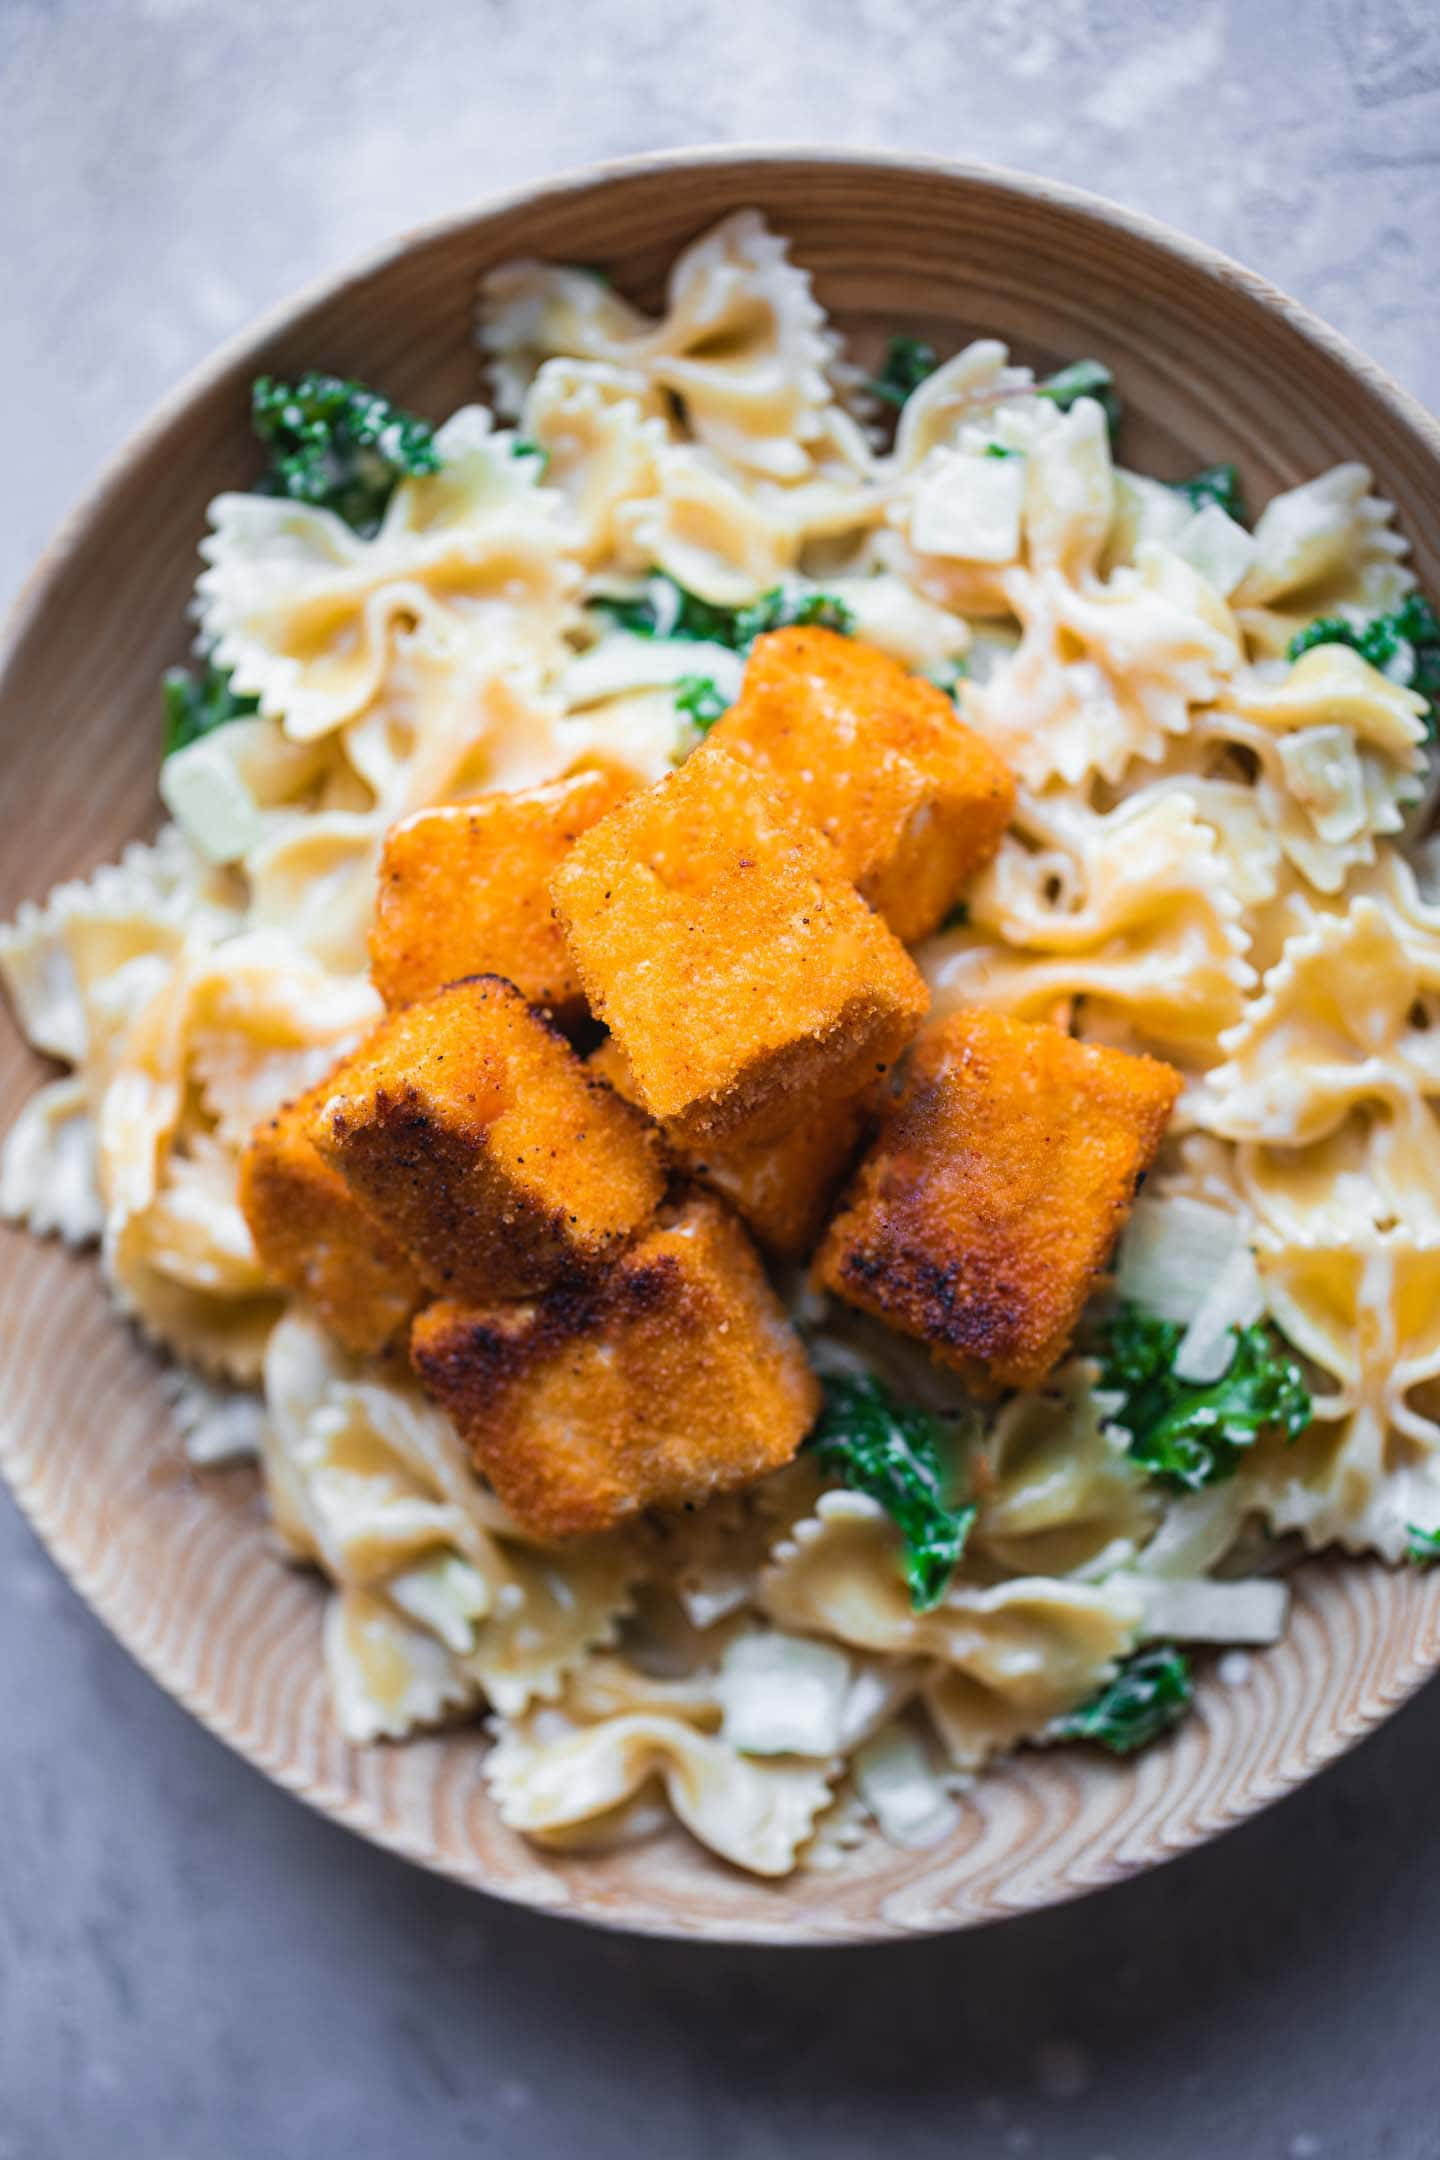 Fried tofu cubes over a bowl of pasta